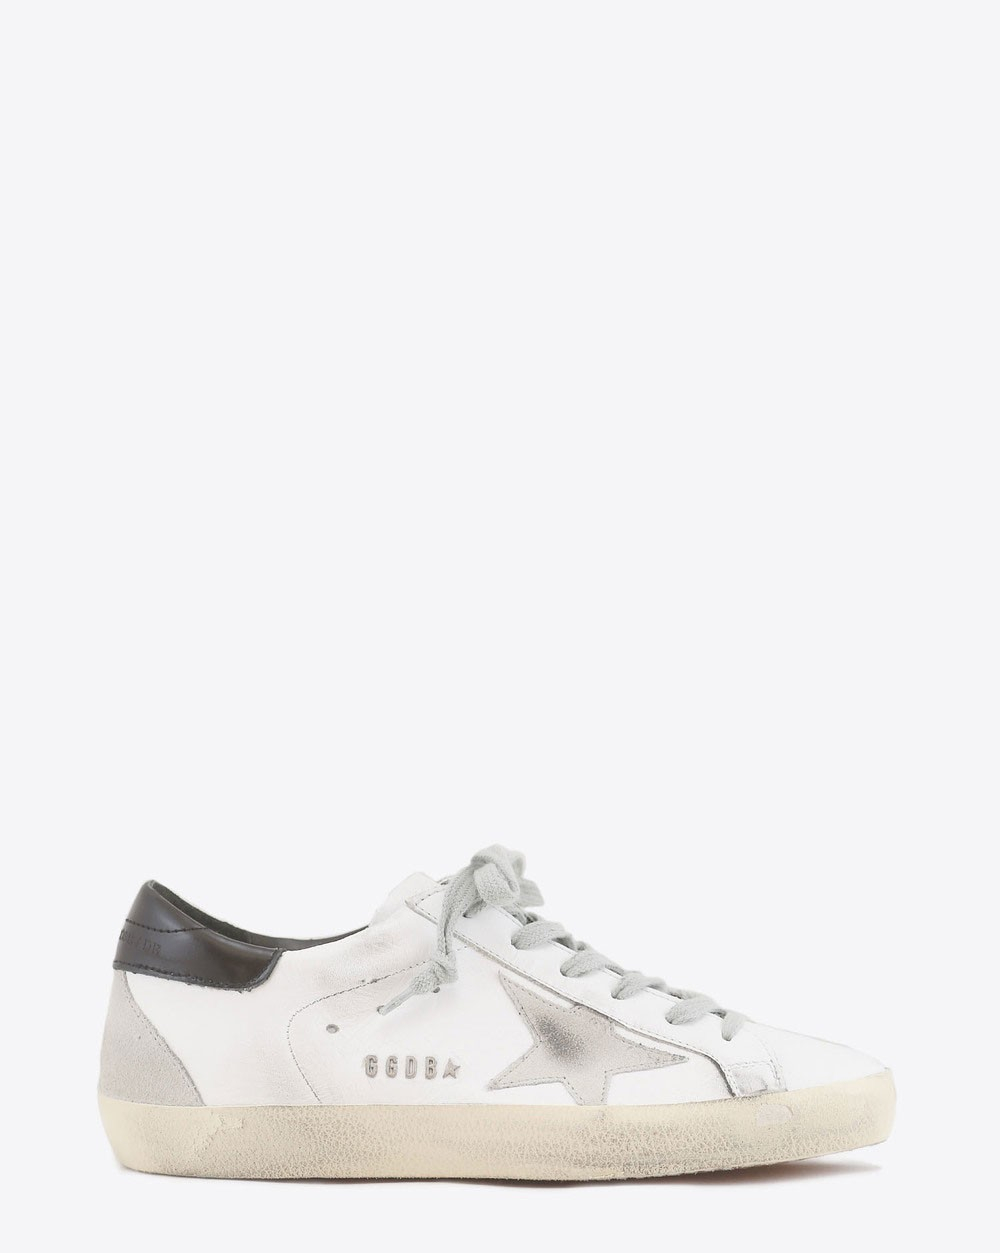 Golden Goose Woman Permanent Sneakers Superstar cuir blanc arrière noir 10220